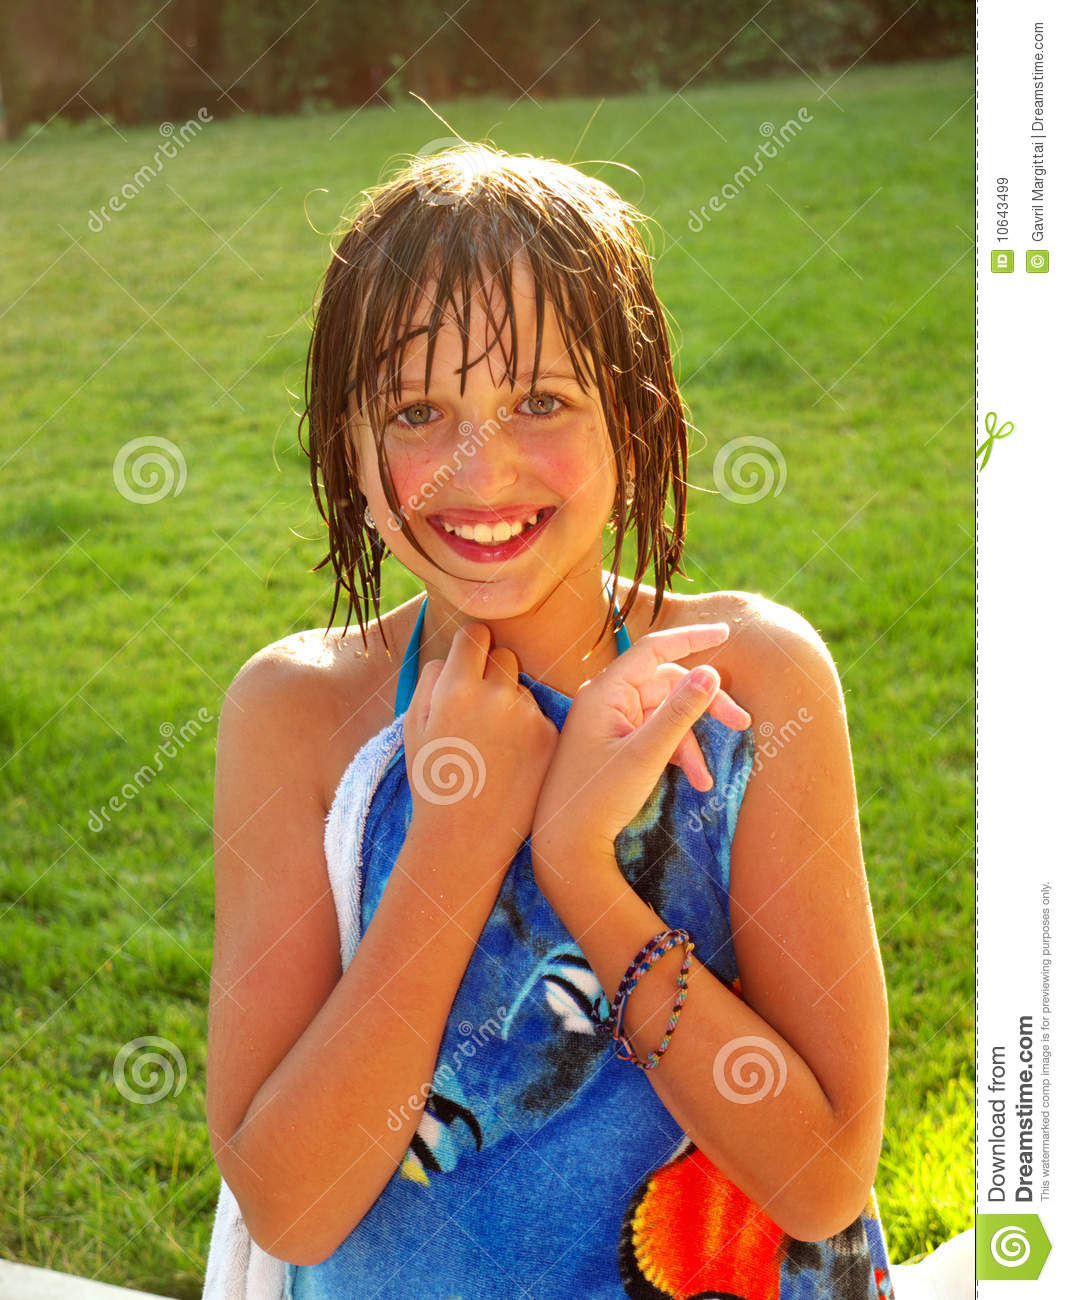 Girls who are wet